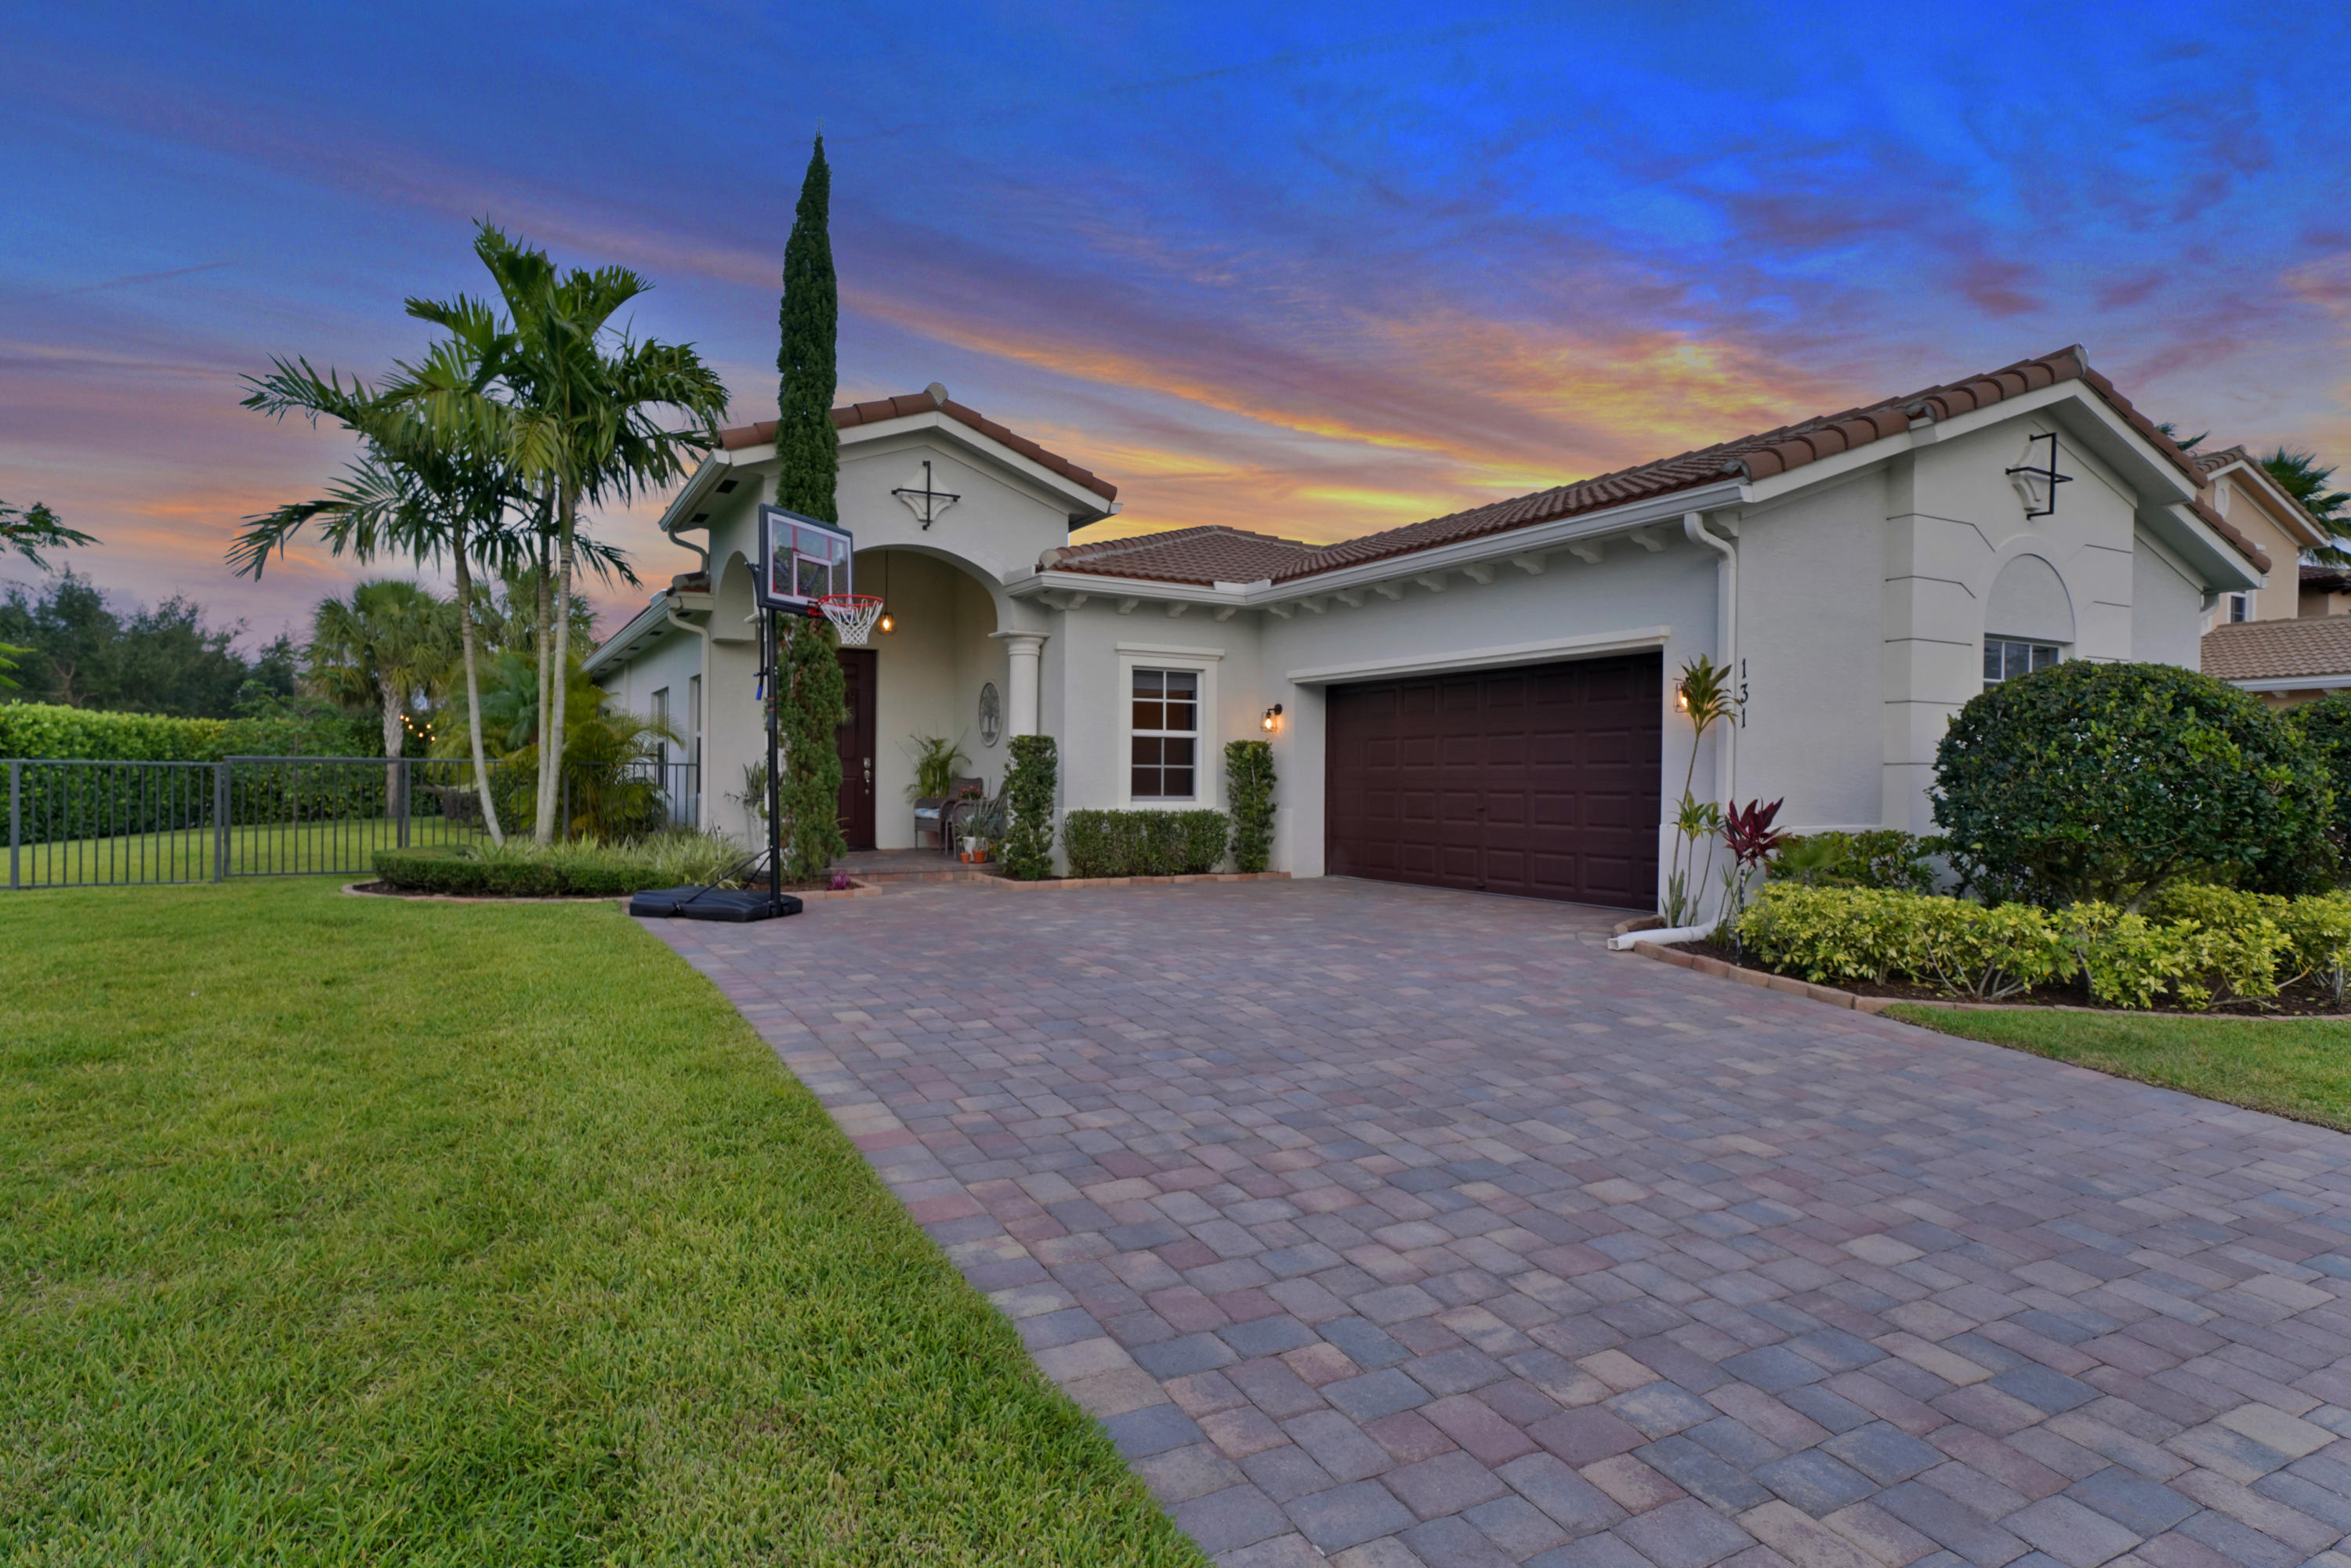 """4 bed, 2.5 bath masterpiece on a LARGE lot 500' from the resort-like amenities of Jupiter's premier gated community, Rialto. Enter and the dining room greets seating 8 adjacent the formal living room, both served by a 1/2 bath. The kitchen stuns with 42'' cabinets, granite counters, glass backsplash, pantry & island overlooking an eat-in kitchen & spacious family room. A covered patio invites you to a fenced backyard paradise while pavers extend the living area w/ a fire pit & an expansive side yard. Inside, the Master Bedroom is a true sanctuary w/ wood-look tile floors, walk-in closet, soaking tub, glass shower & comfort height dual vanity. 3 guest bedrooms with wood look tile floors are served by a full hall bath w/ 2x vanity & glass shower & cabana door. Impact Glass, A-Rated Schools! Presenting a 4 bedroom, 2.5 bathroom Mediterranean masterpiece perched on a massive corner lot over .25 acres, adjacent to one of Rialto's coveted greenspaces and just 500 ft. to the clubhouse and pool. This single-story Giorgio model is the NEWEST home in all of Rialto and has been further enhanced since construction was completed in 2015. From the curb, a turned garage, iron accents and a soaring covered entrance framed by a sole arbor vitae enhance appeal. Enter, and the home's youth is apparent, pristine paint, 20"""" tile on the diagonal and pure silence courtesy of the impact rated glass and doors. A wide foyer opens to the dining room straight ahead, a designated space yet an informal feel. Next, the spacious living room at right, a flexible space takes all the pressure off the rest of the living spaces providing elbow room for the busiest households. Ahead, the kitchen awaits, truly the heart of the home featuring 42"""" shaker style upper cabinets in rich chocolate tones with LED under cabinet lighting, a perfect pairing with the granite counter tops and glass backsplash. An island seats 3 and features a dual sink with Moen fixtures while the kitchen is finished with a stainless"""